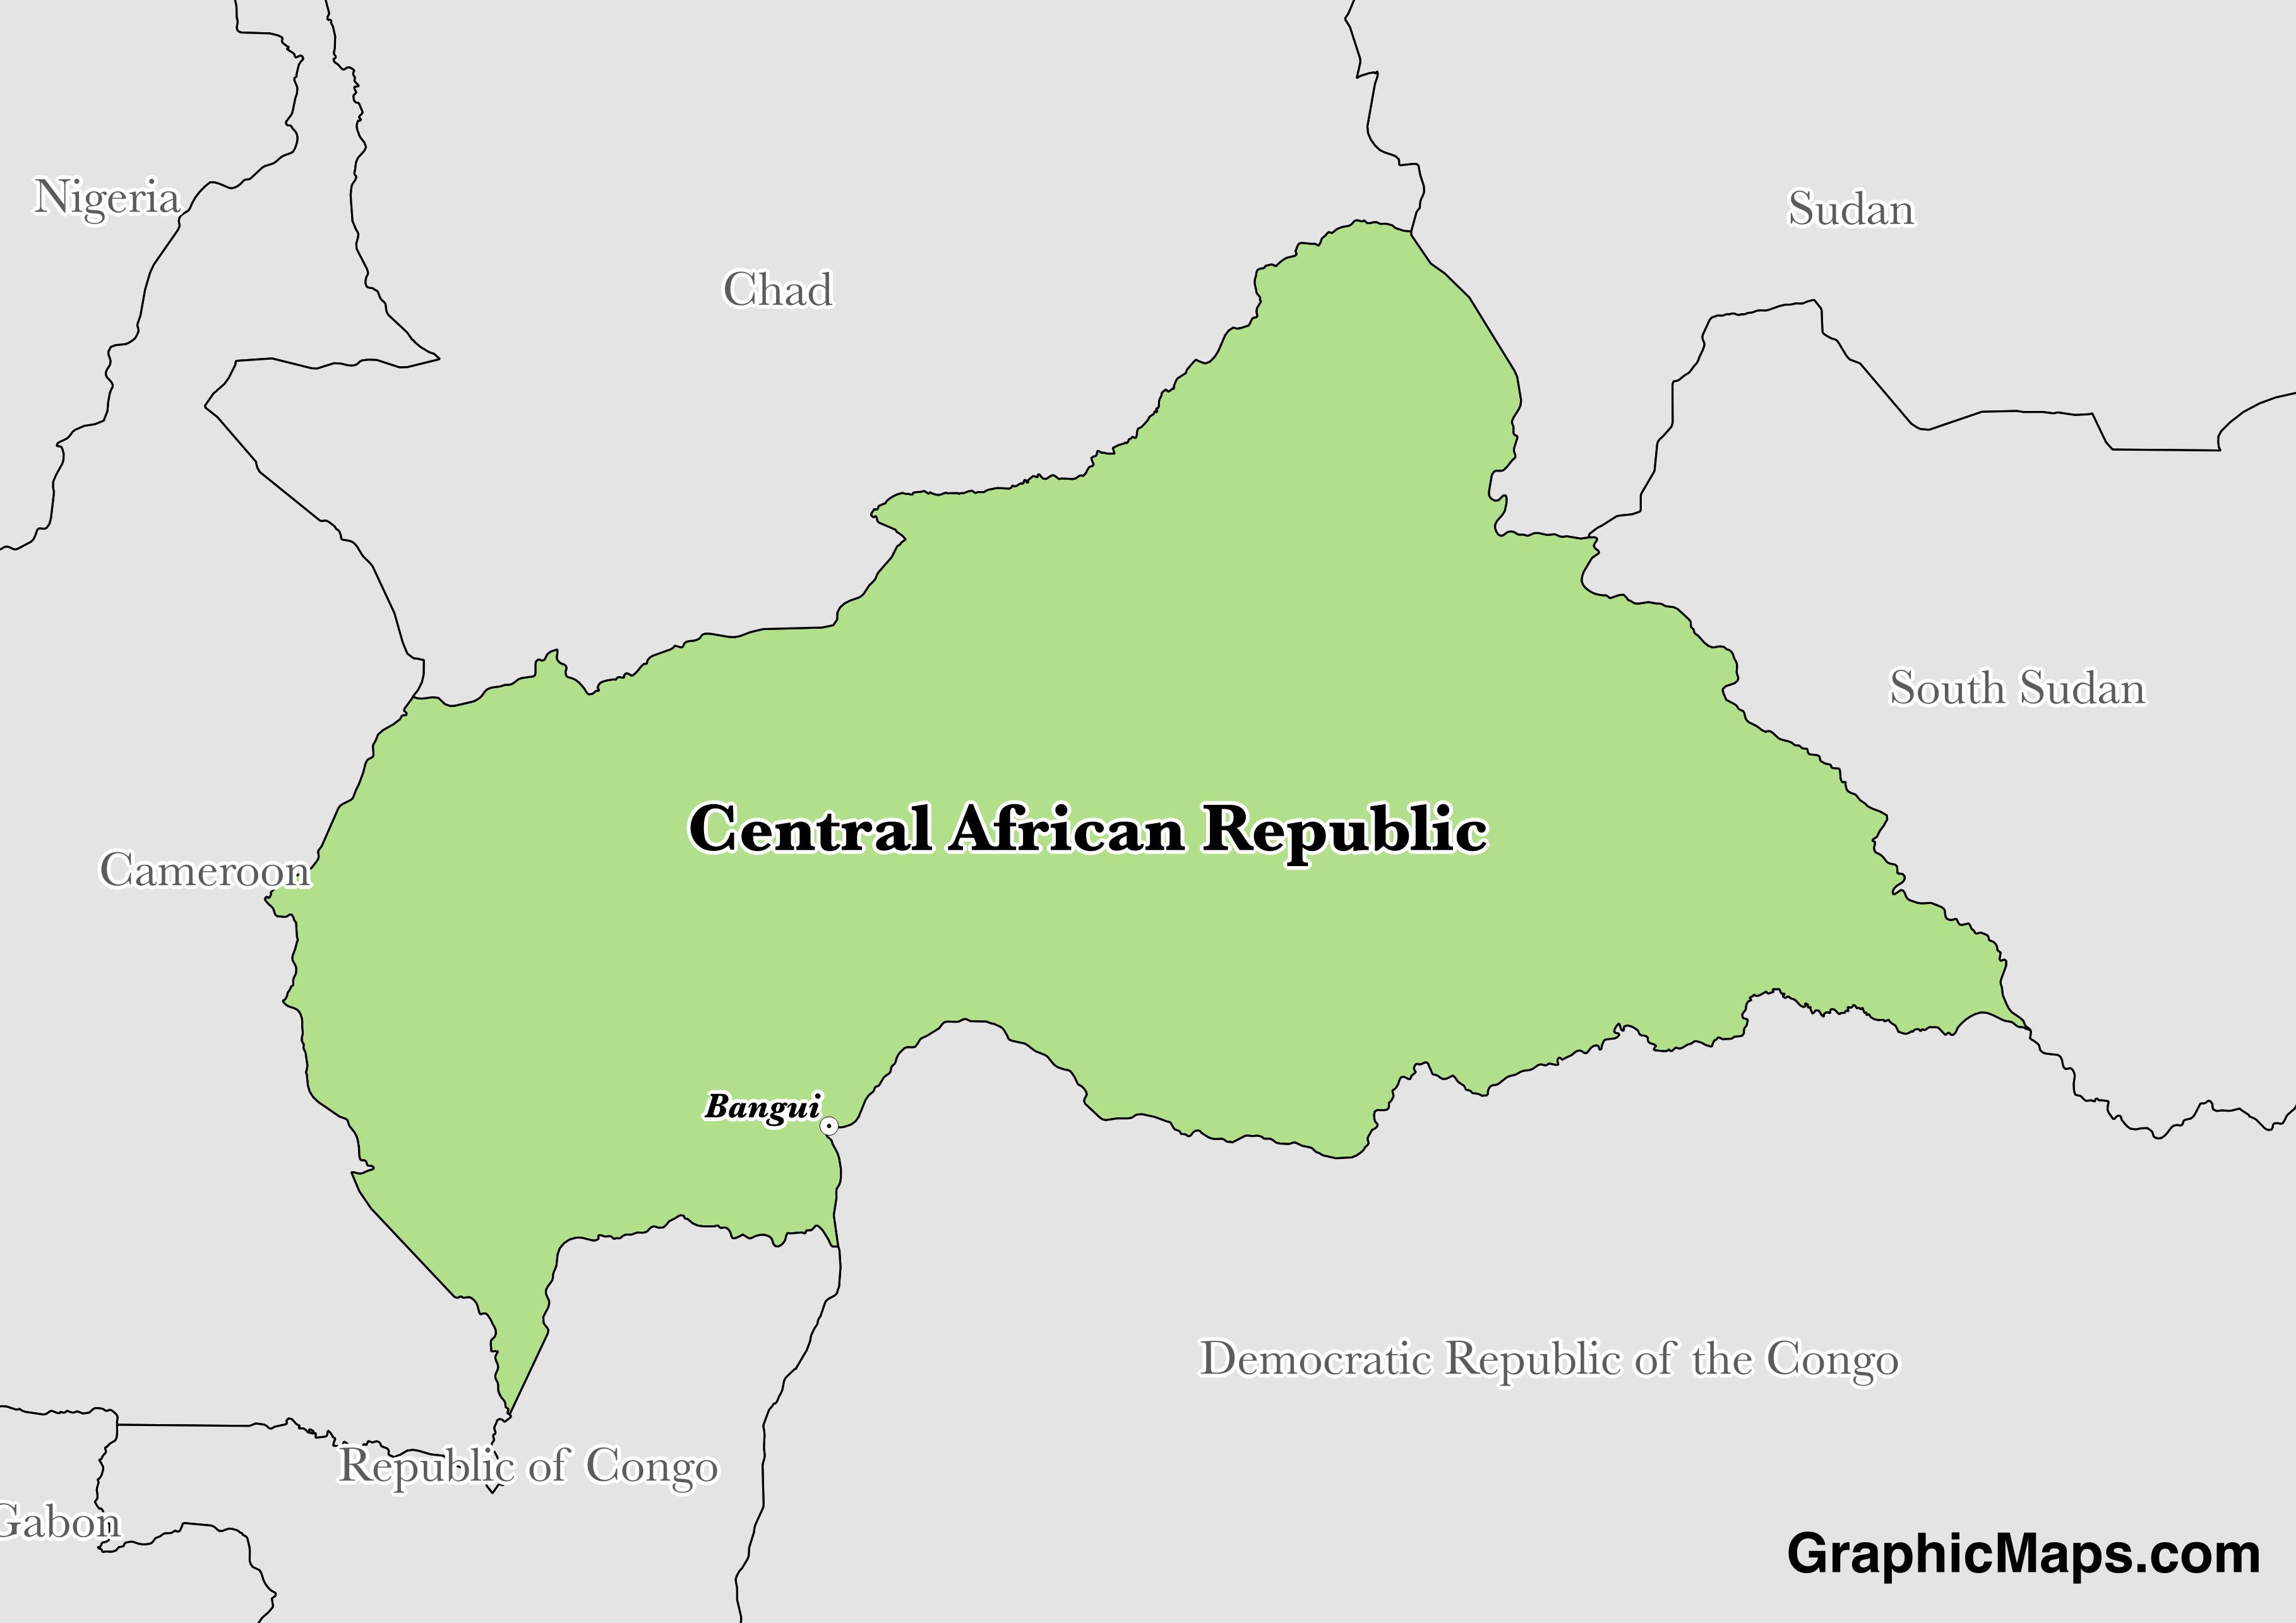 Map showing the location of Central African Republic